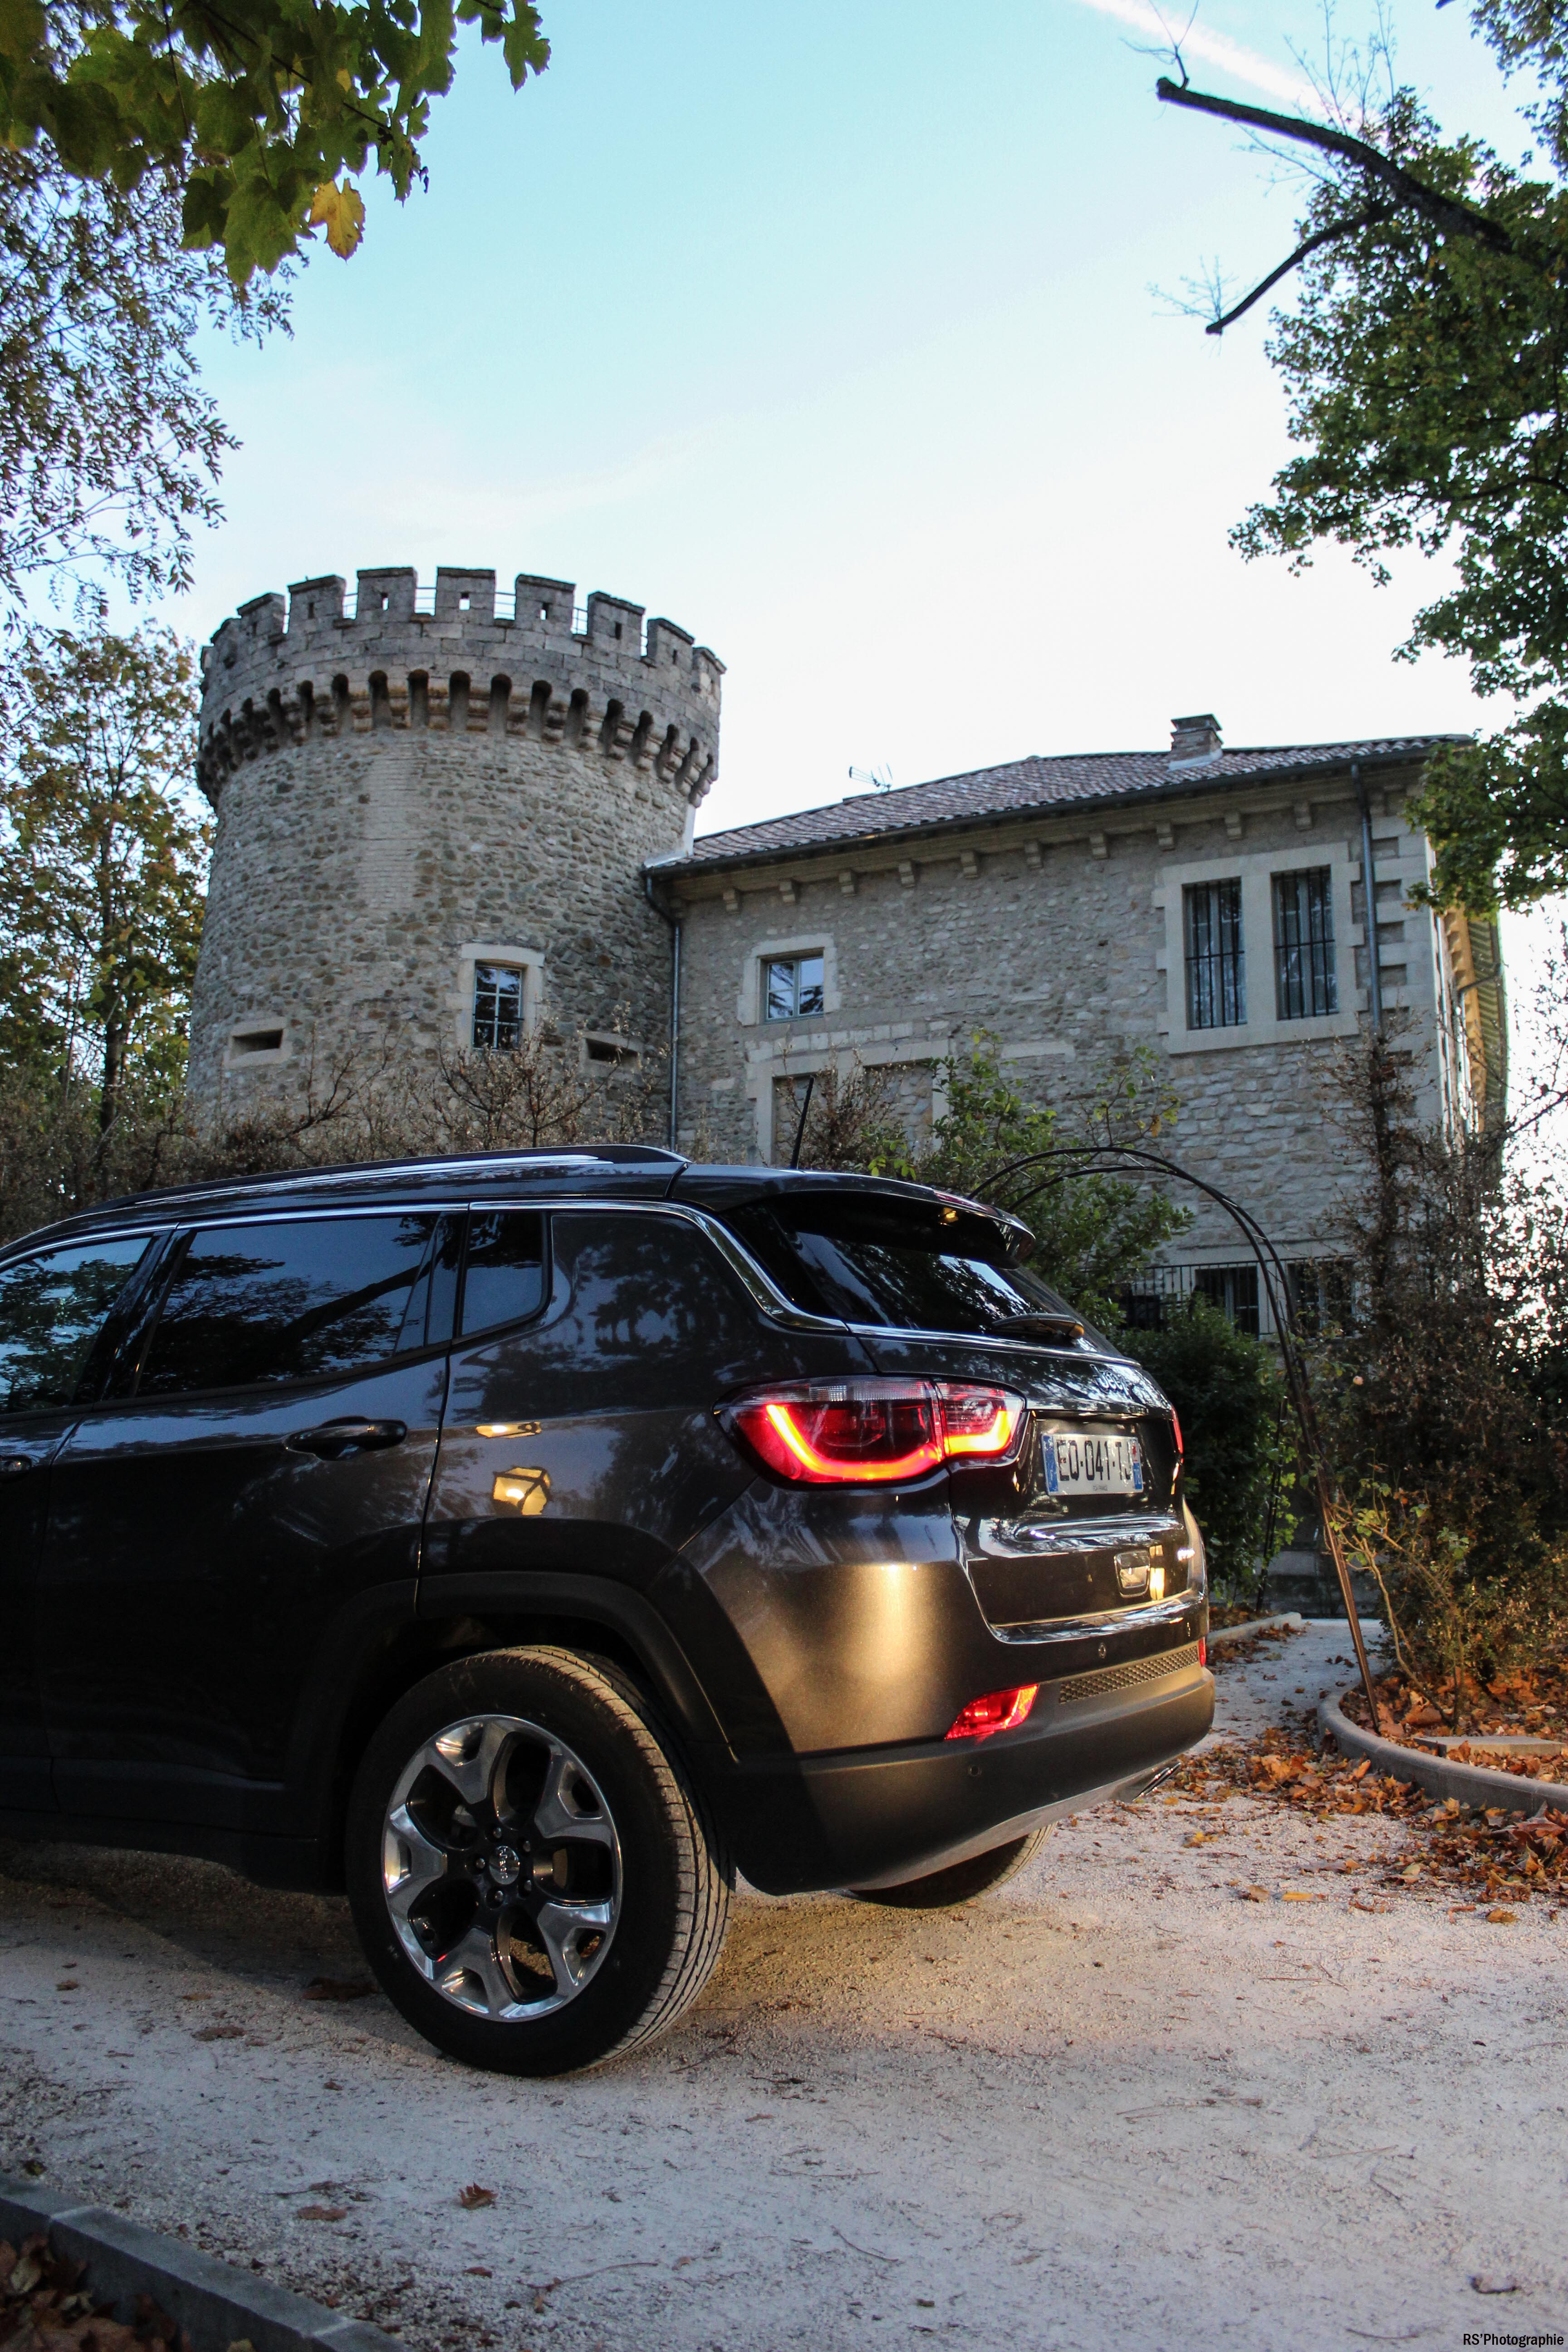 jeepcompass76-jeep-compass-arriere-rear-Arnaud Demasier-RSPhotographie